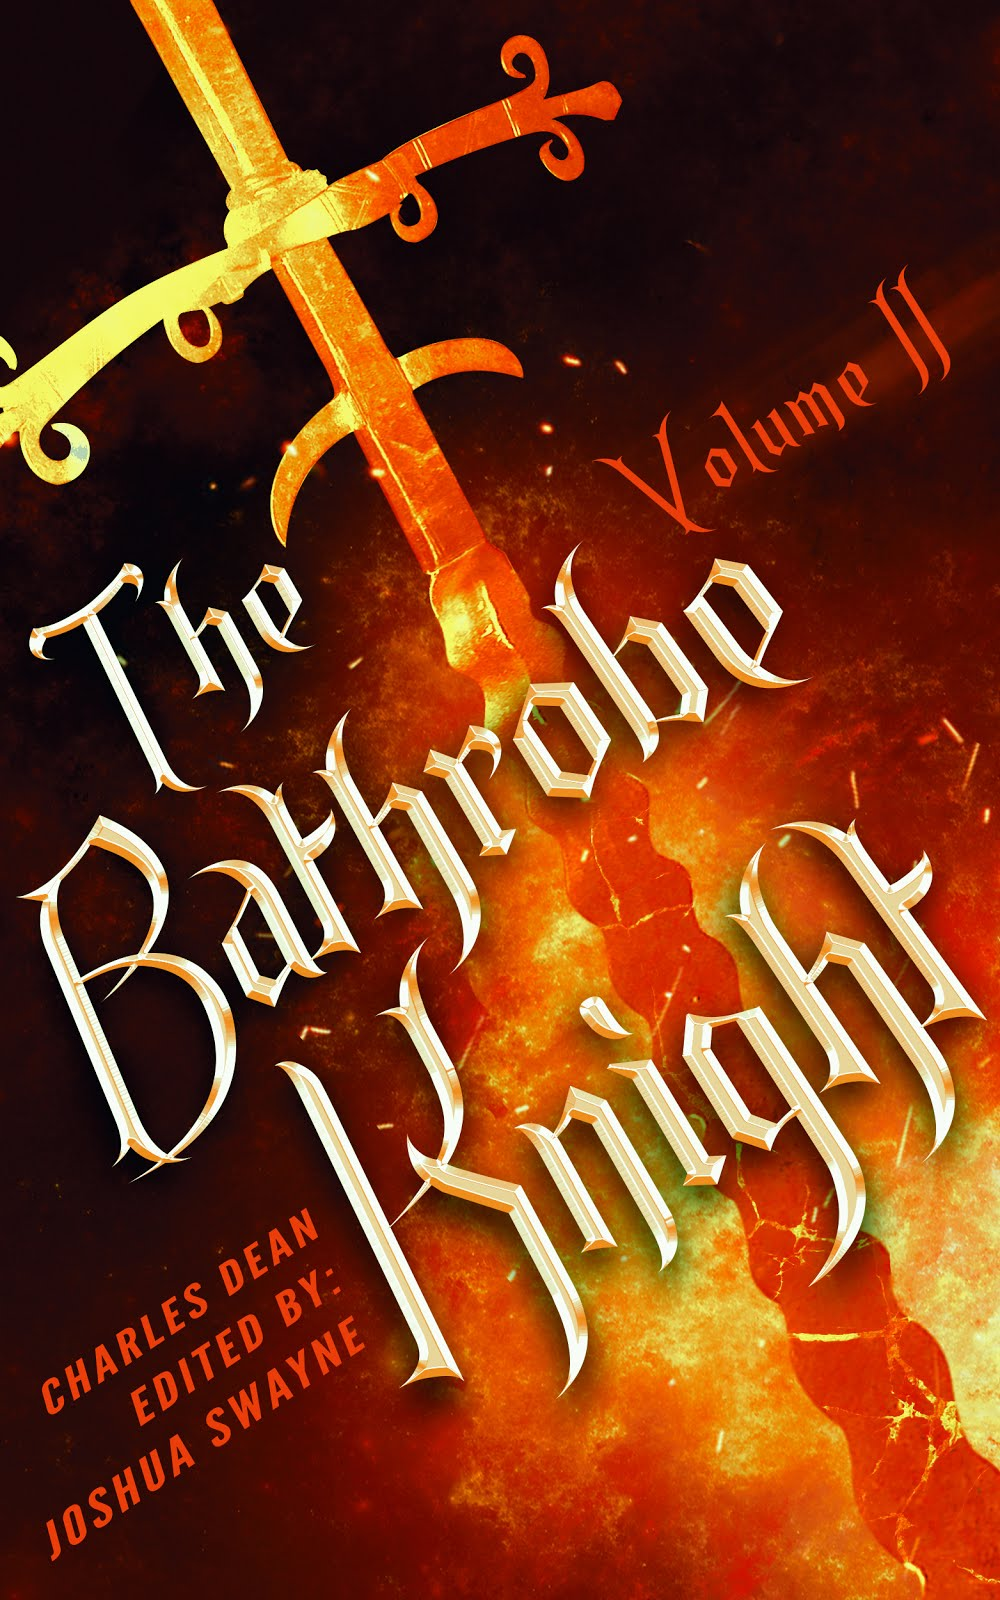 The Bathrobe Knight Volume 2!